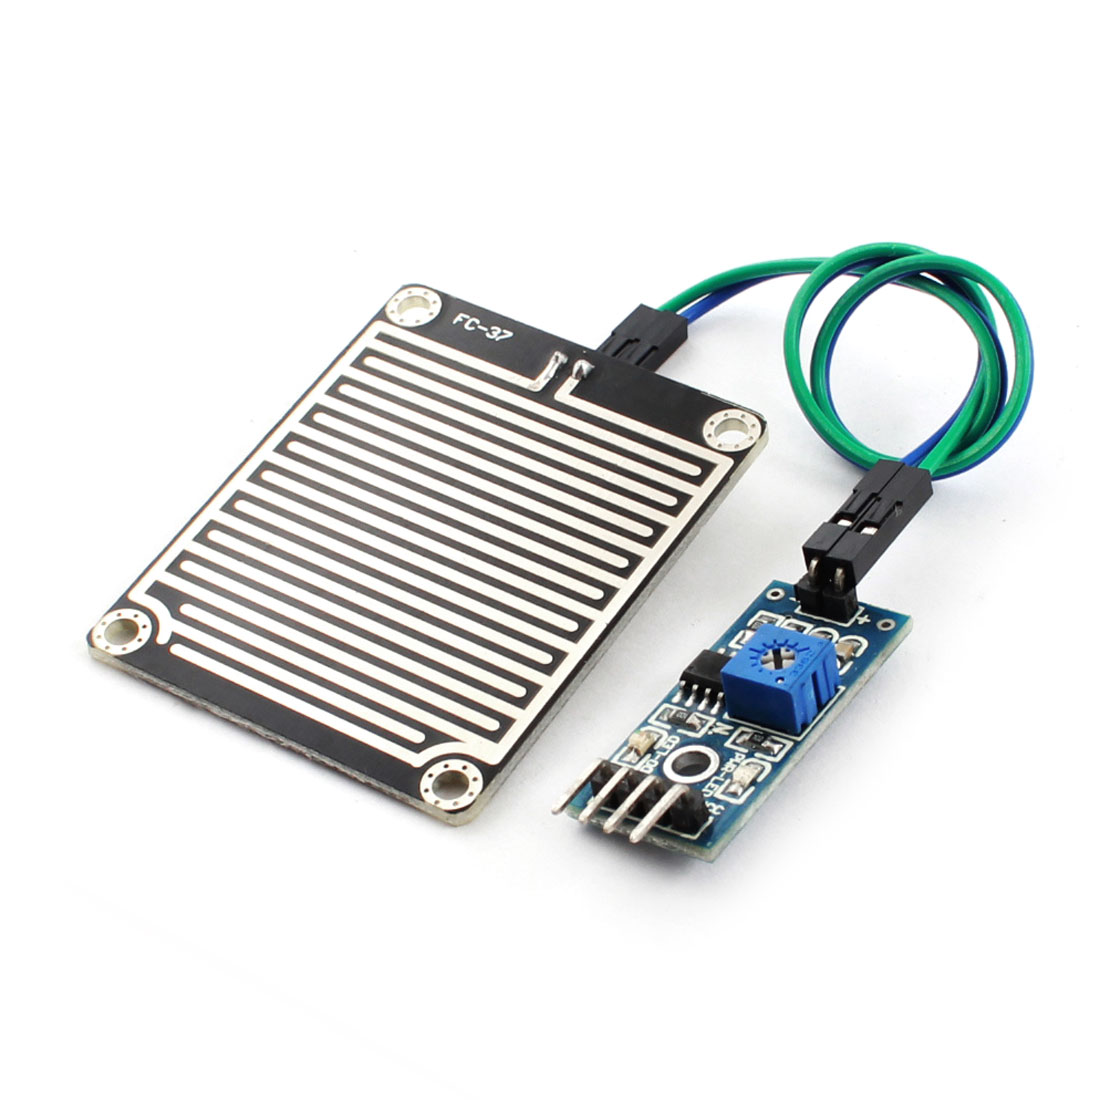 DC 3.3V-5V Rain Raindrop Water Level Humidity Detection Sensor Module PCB Board